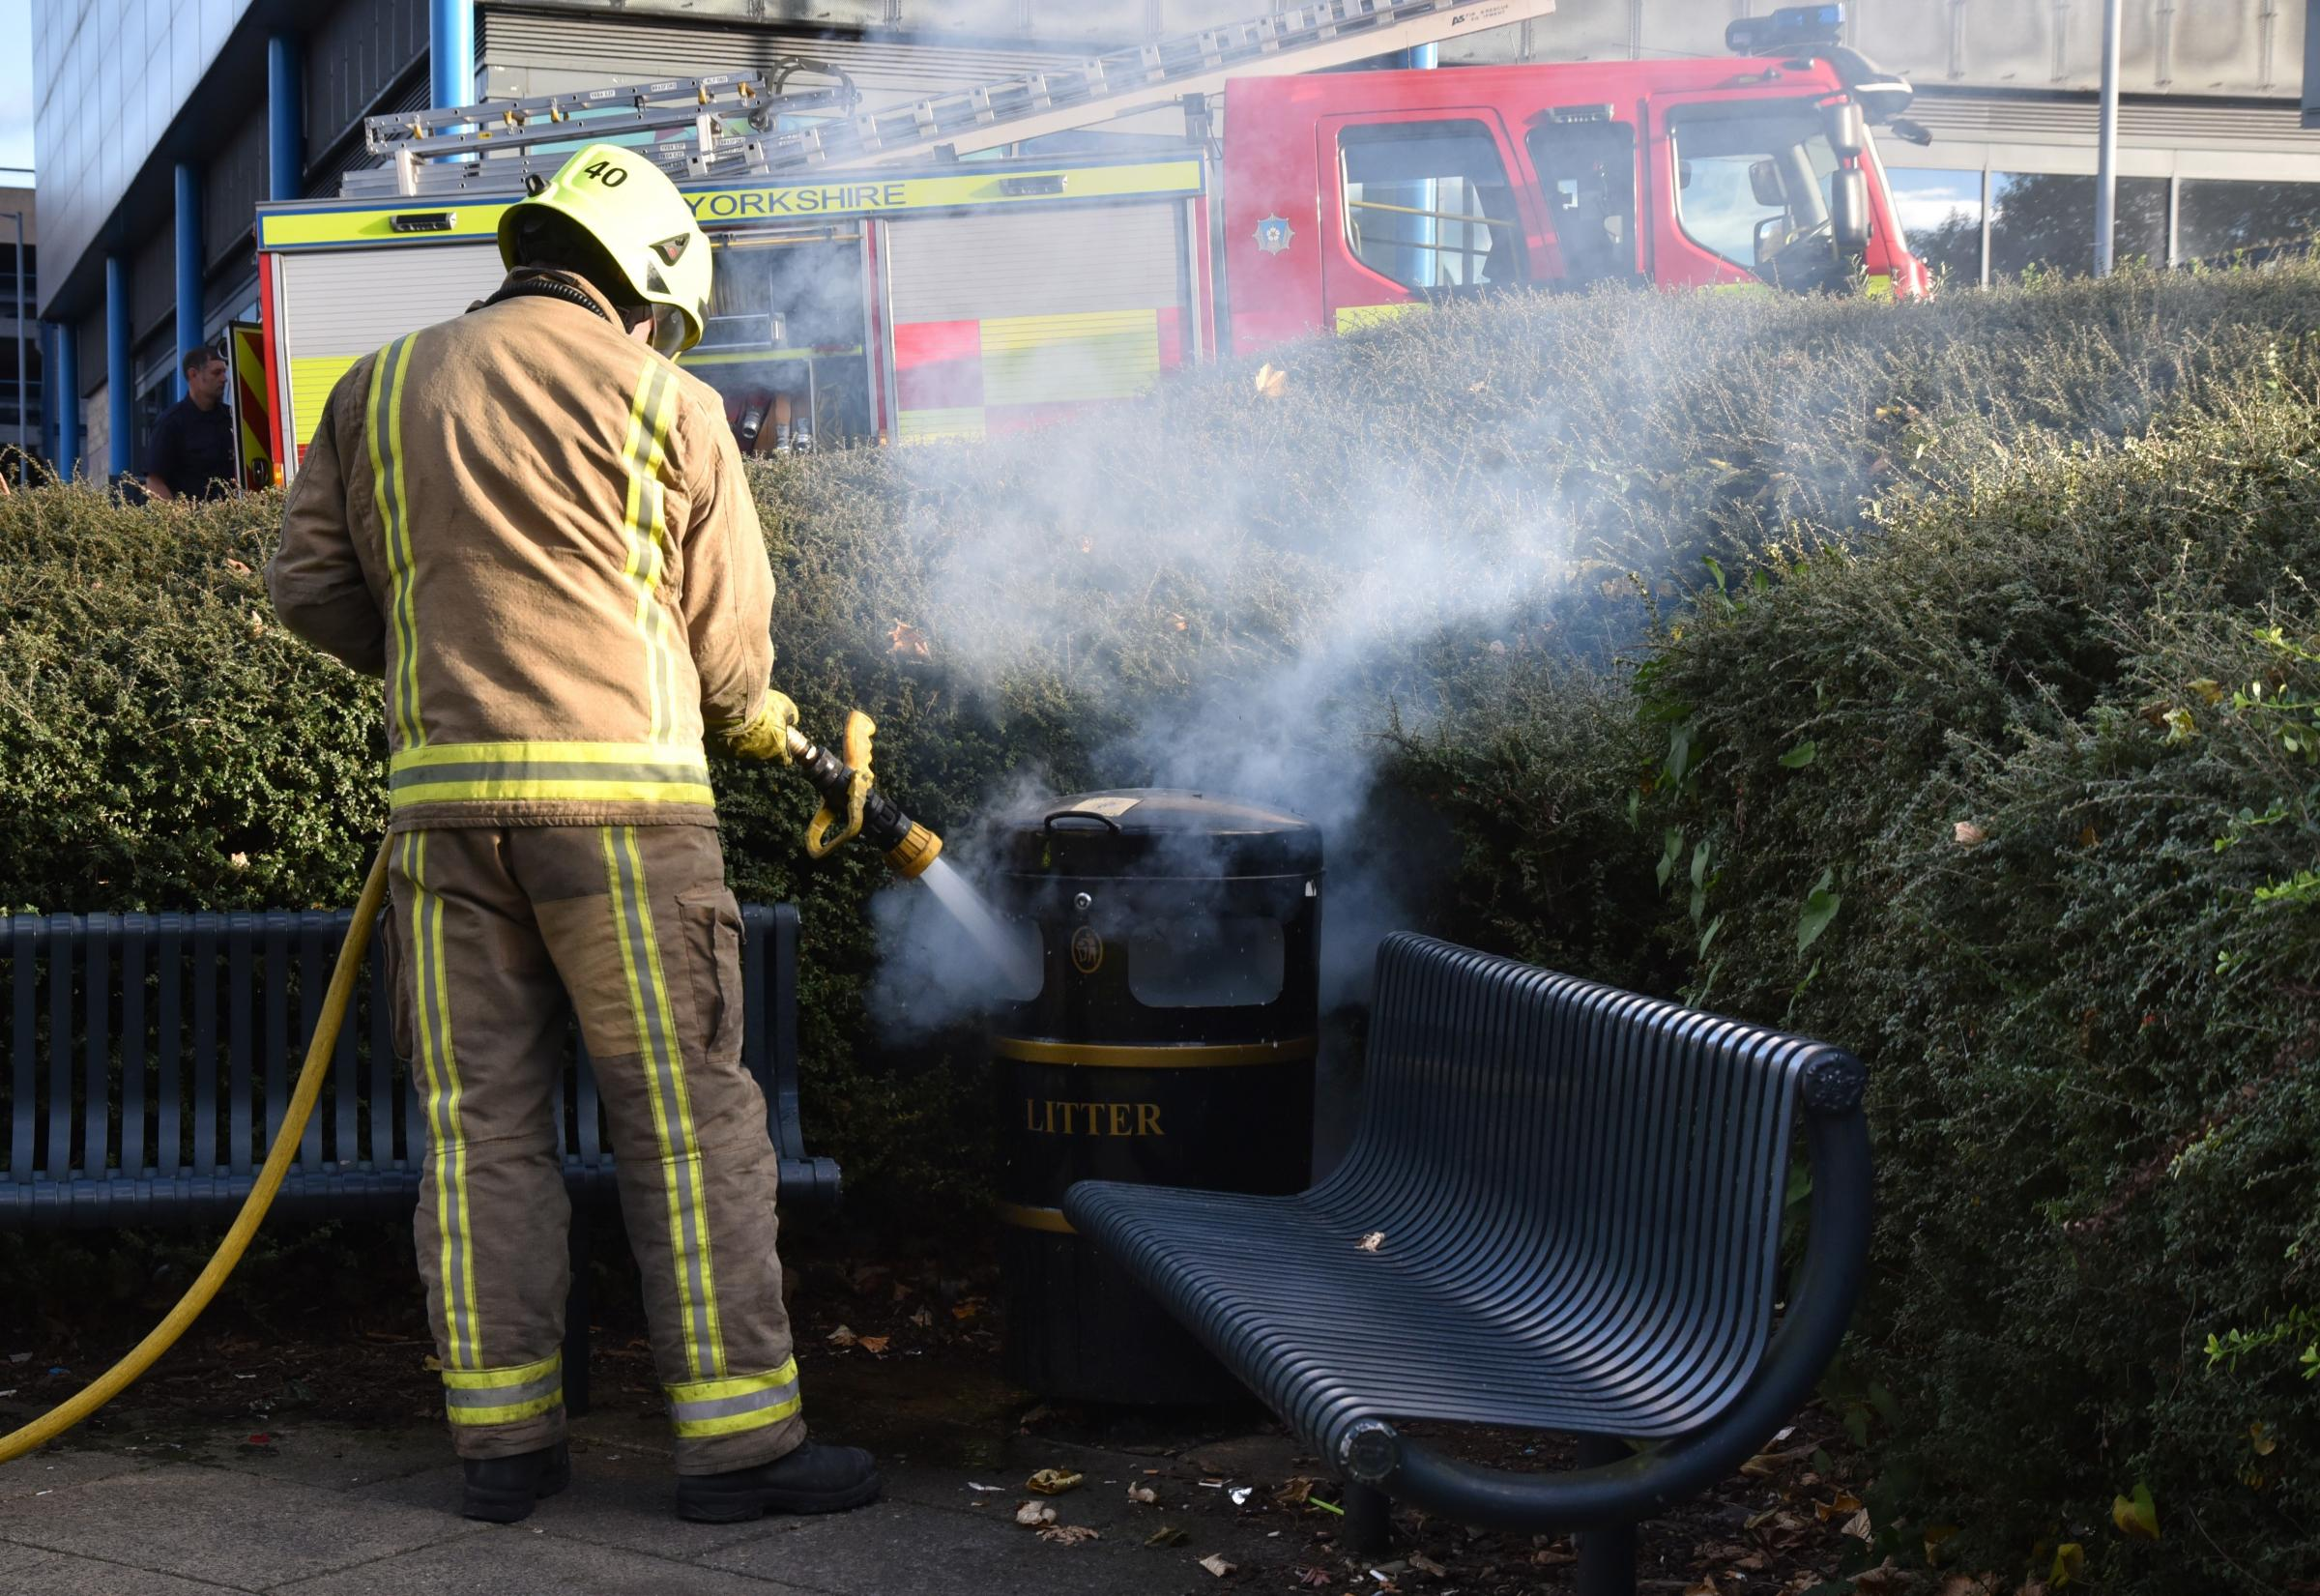 The deliberate fires involved building and vehicle fires, and incidents involving outdoor areas such as refuse